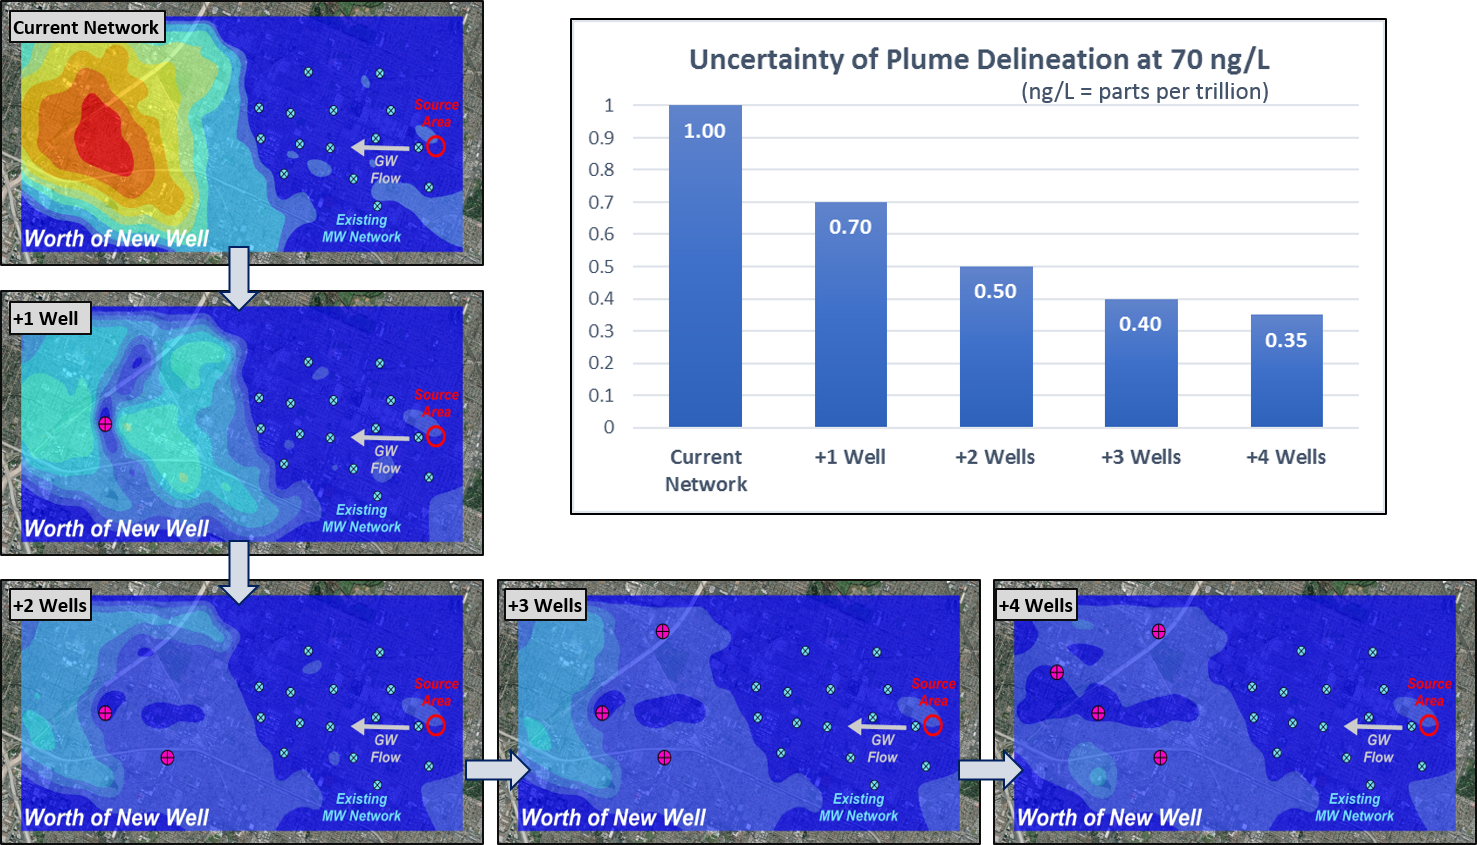 Optimal Methodology for Plume Delineation with Quantified Uncertainty